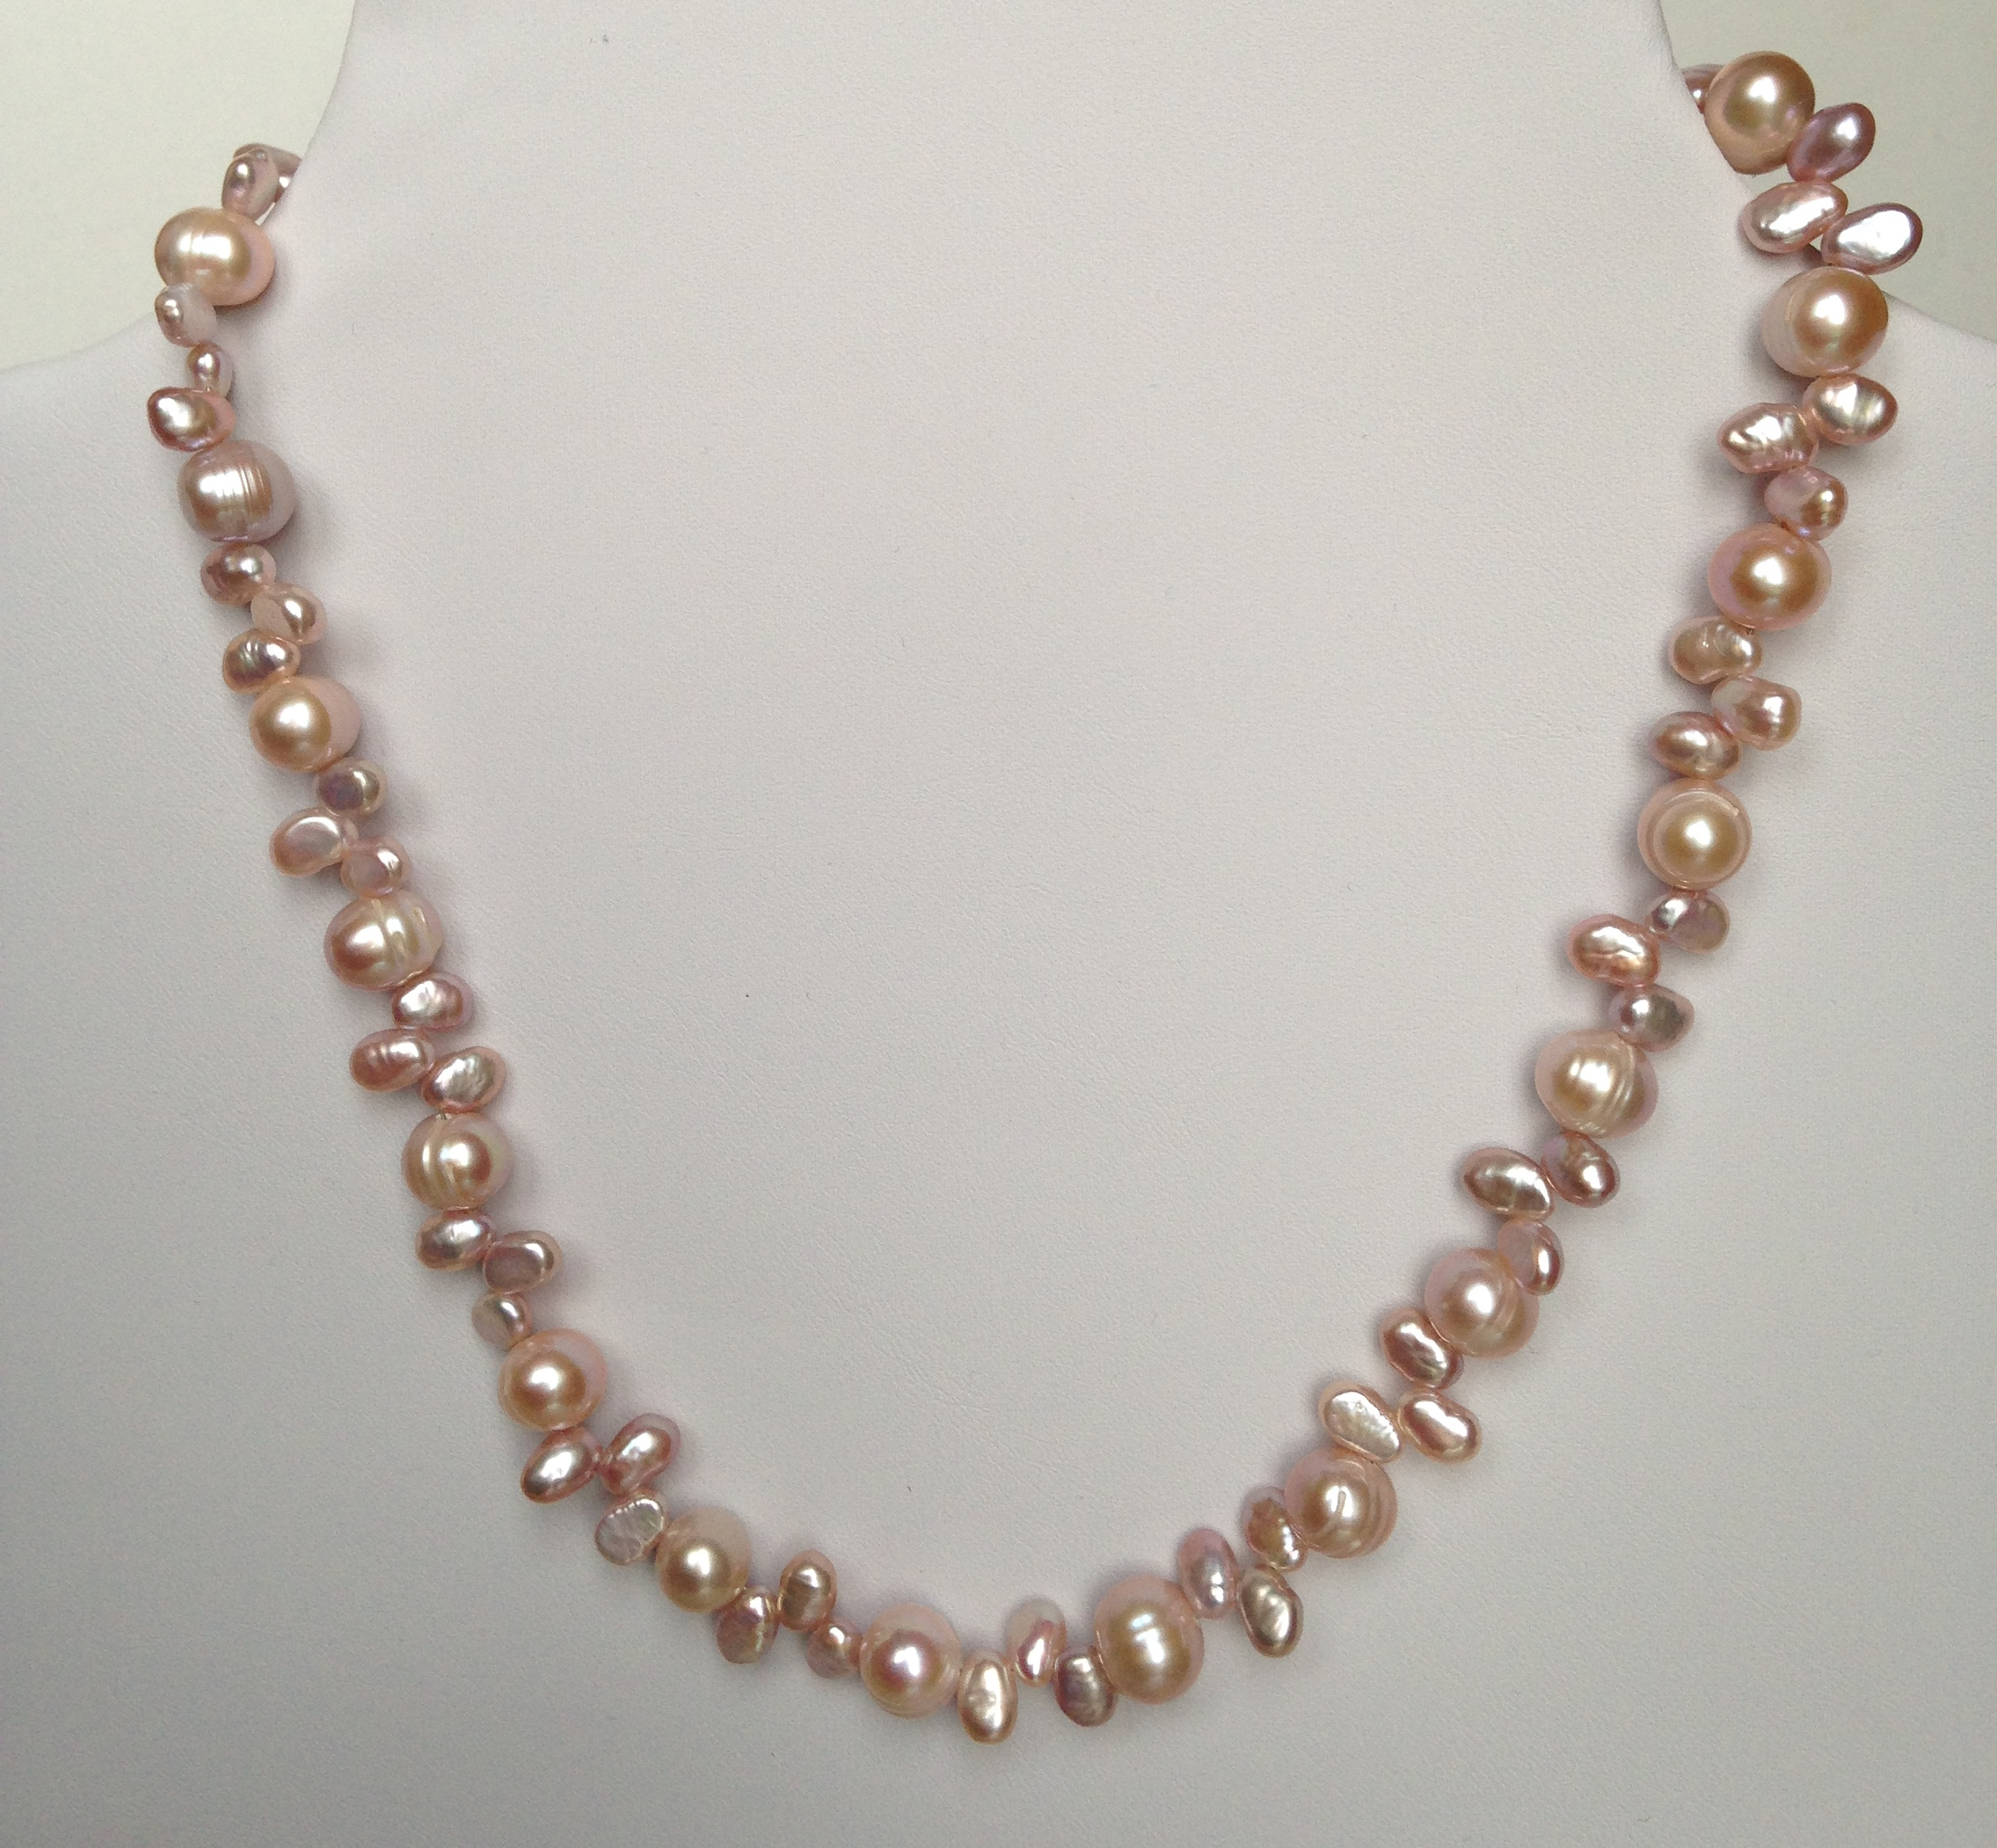 edwards station length pink pearl adjustable product necklace and davies closure silver with freshwater